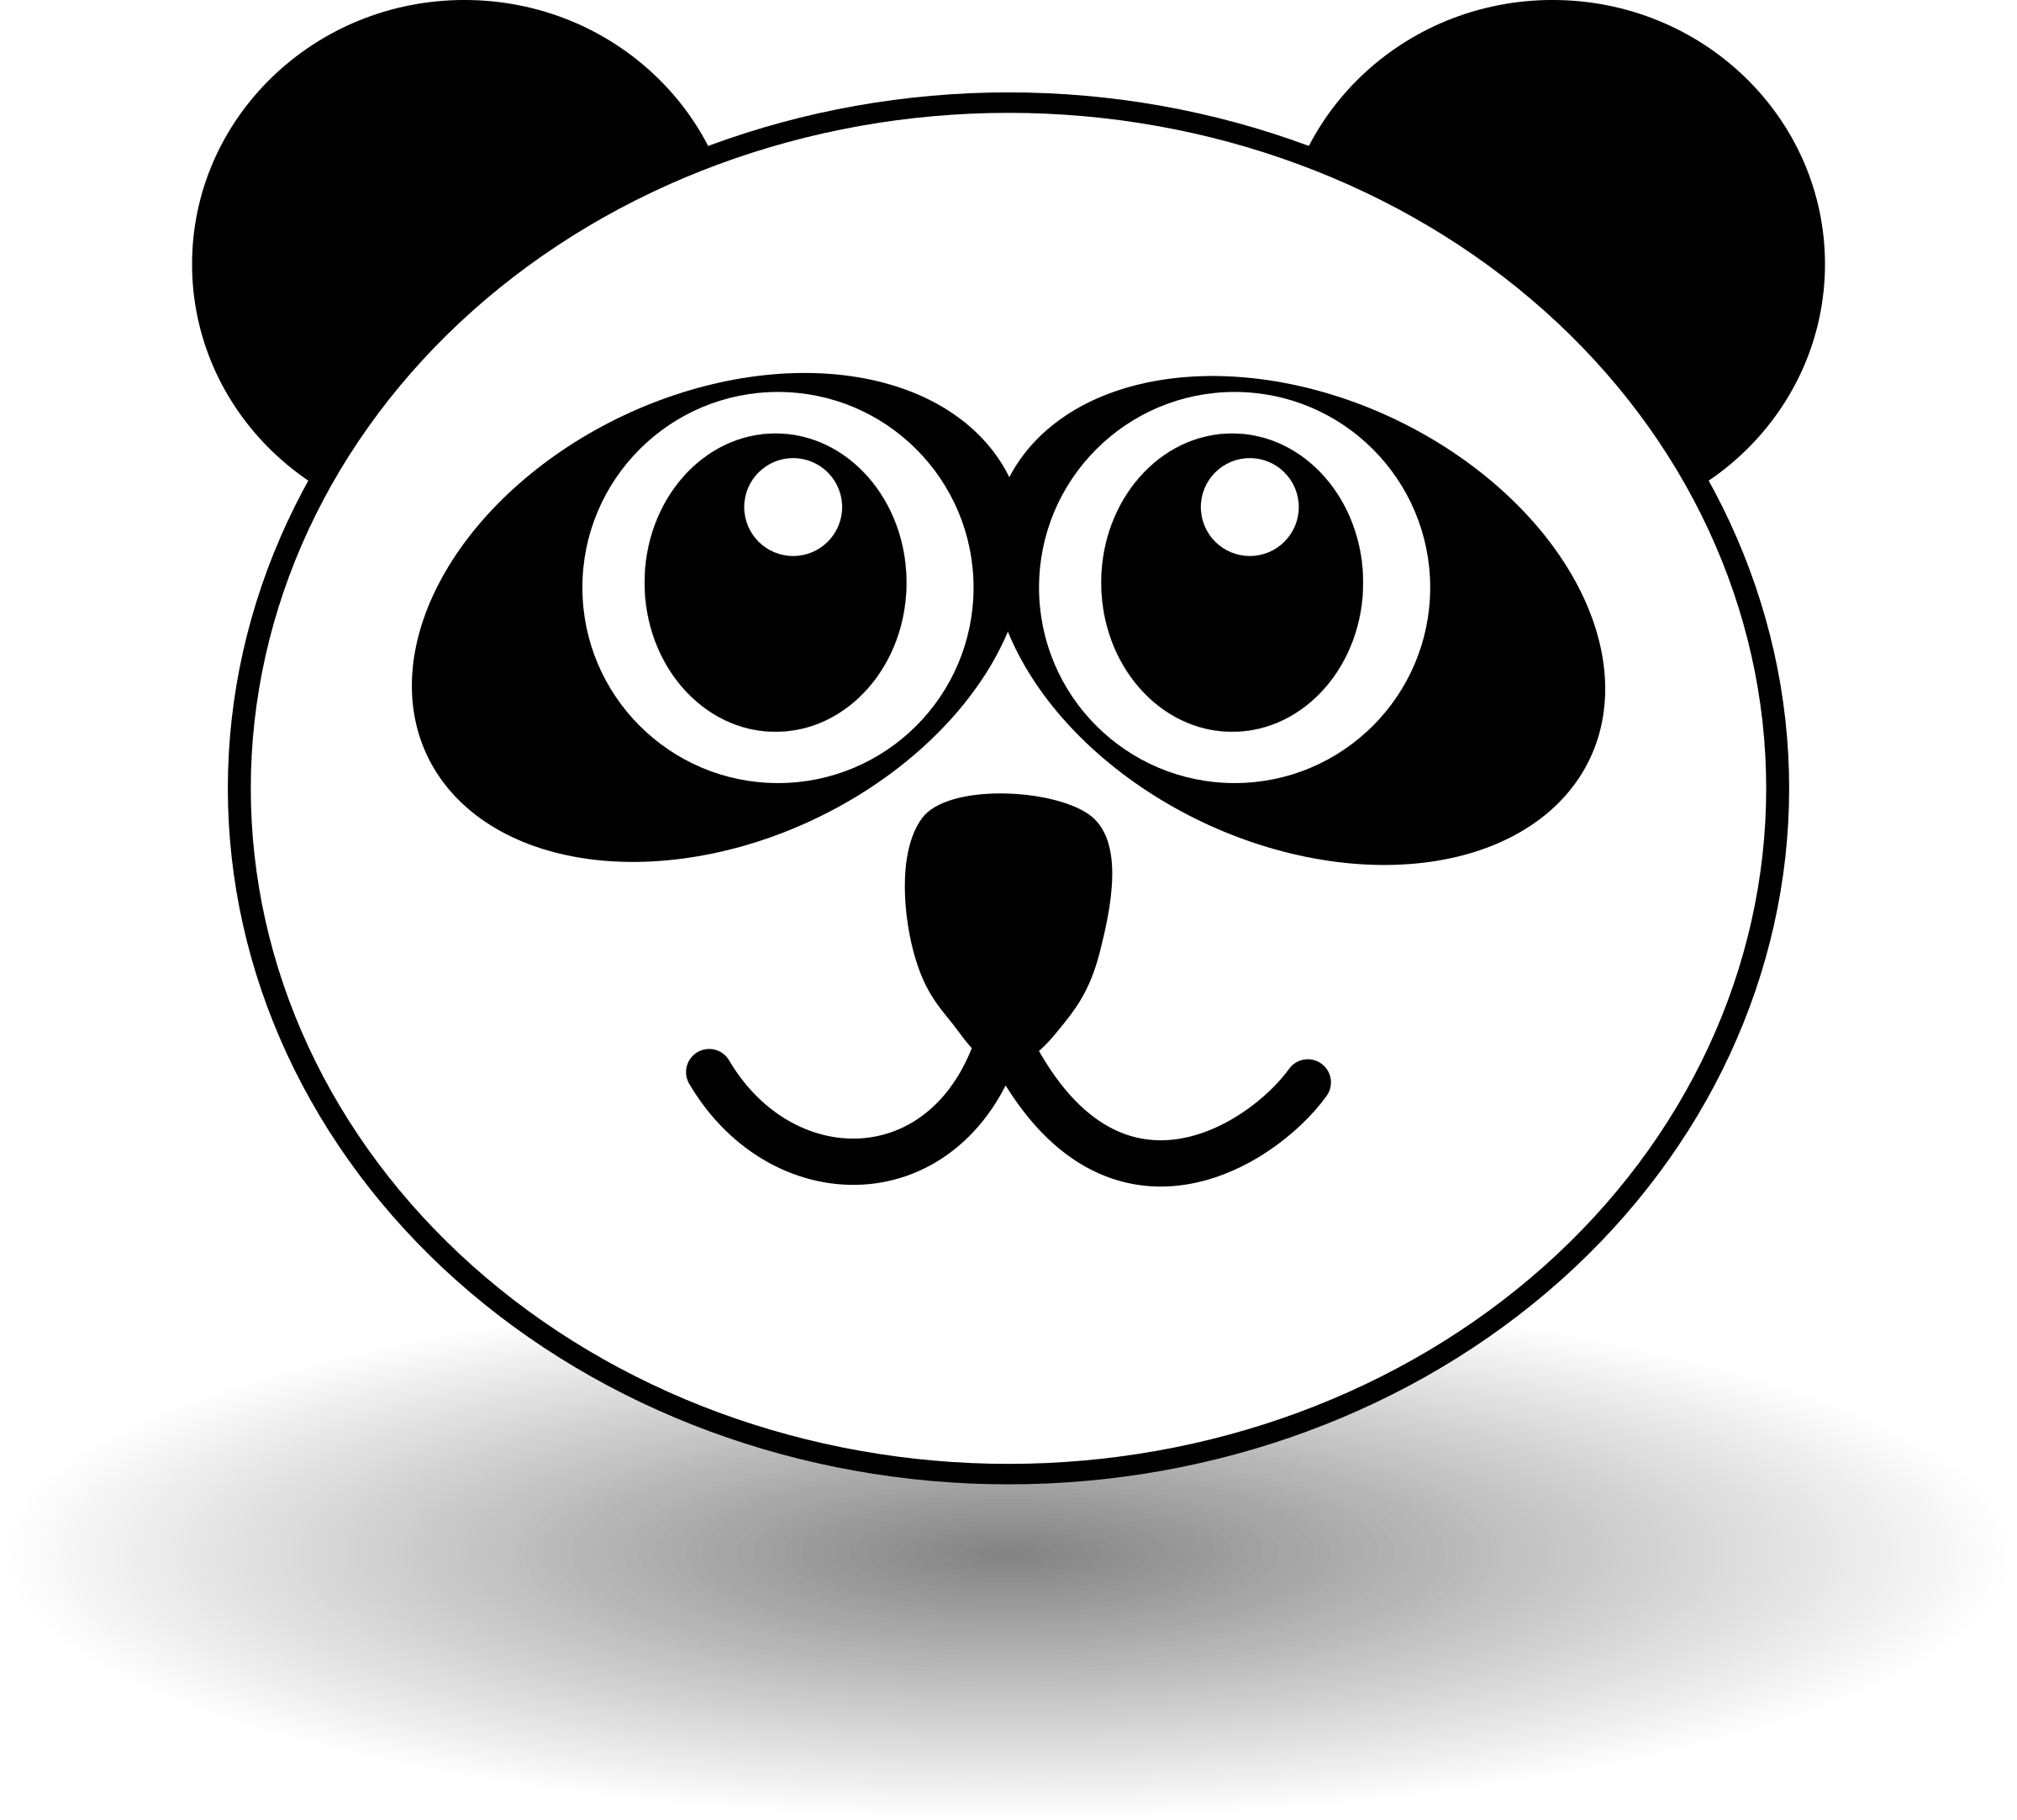 coloring panda clipart black and white clipart funny panda face black and white white coloring panda and black clipart